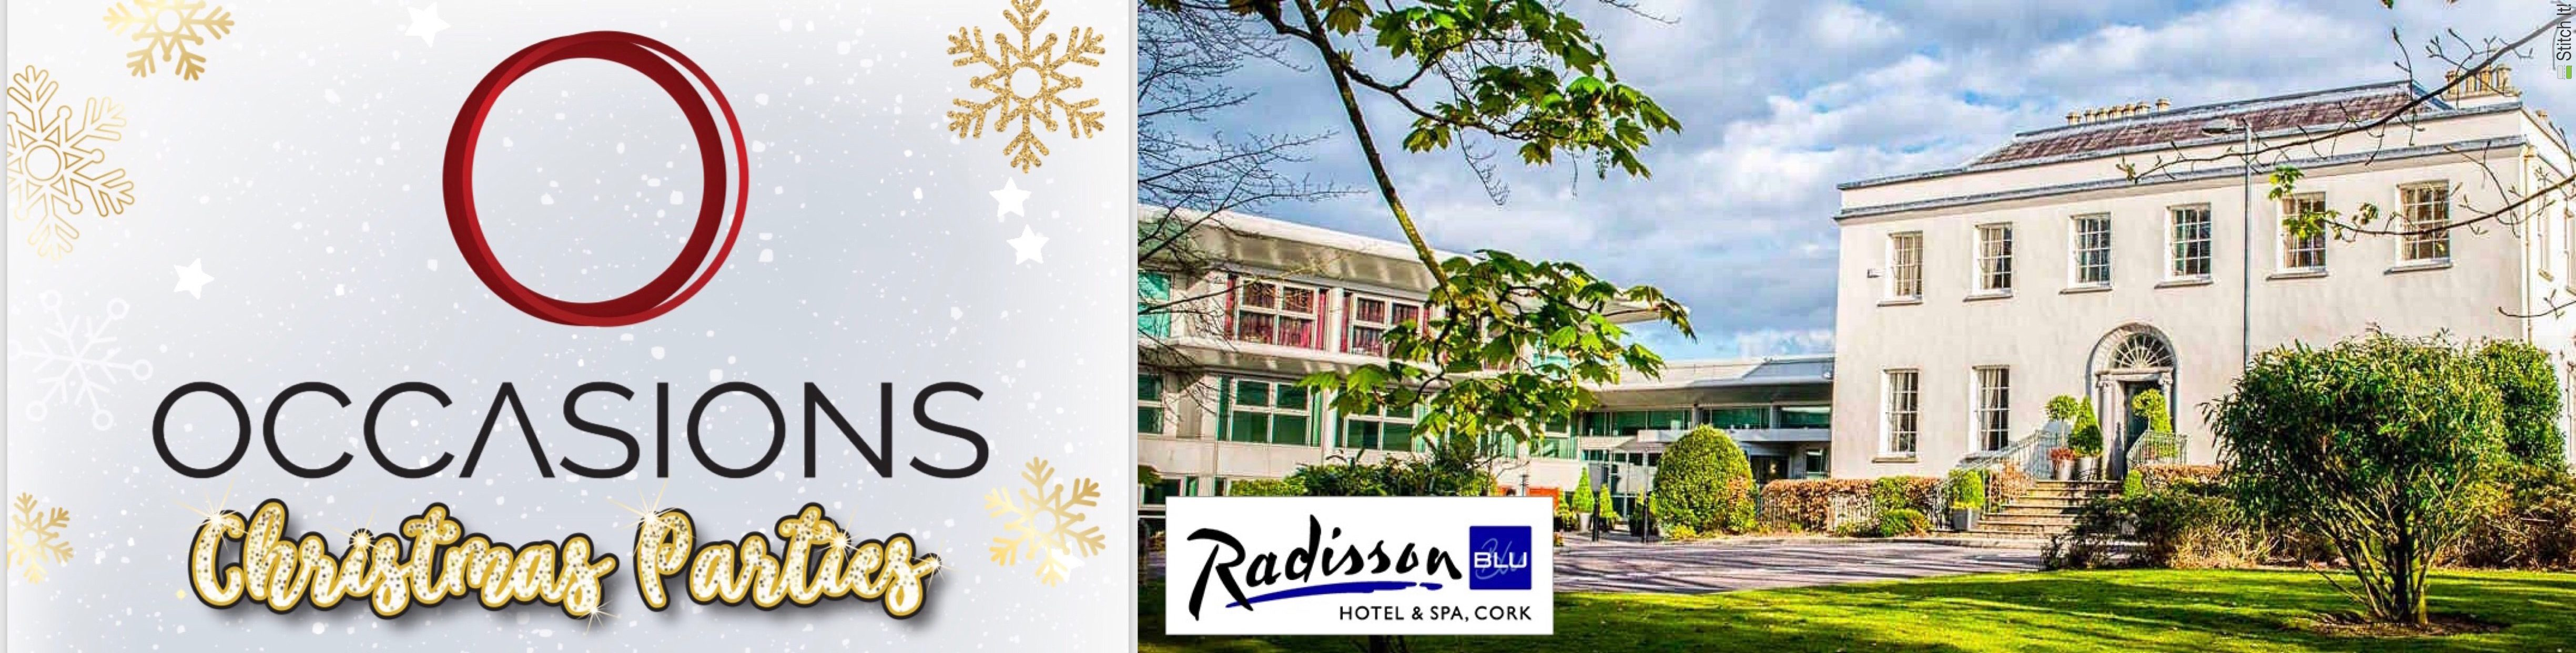 Occasions Christmas Parties - Radisson Blu, Little Island